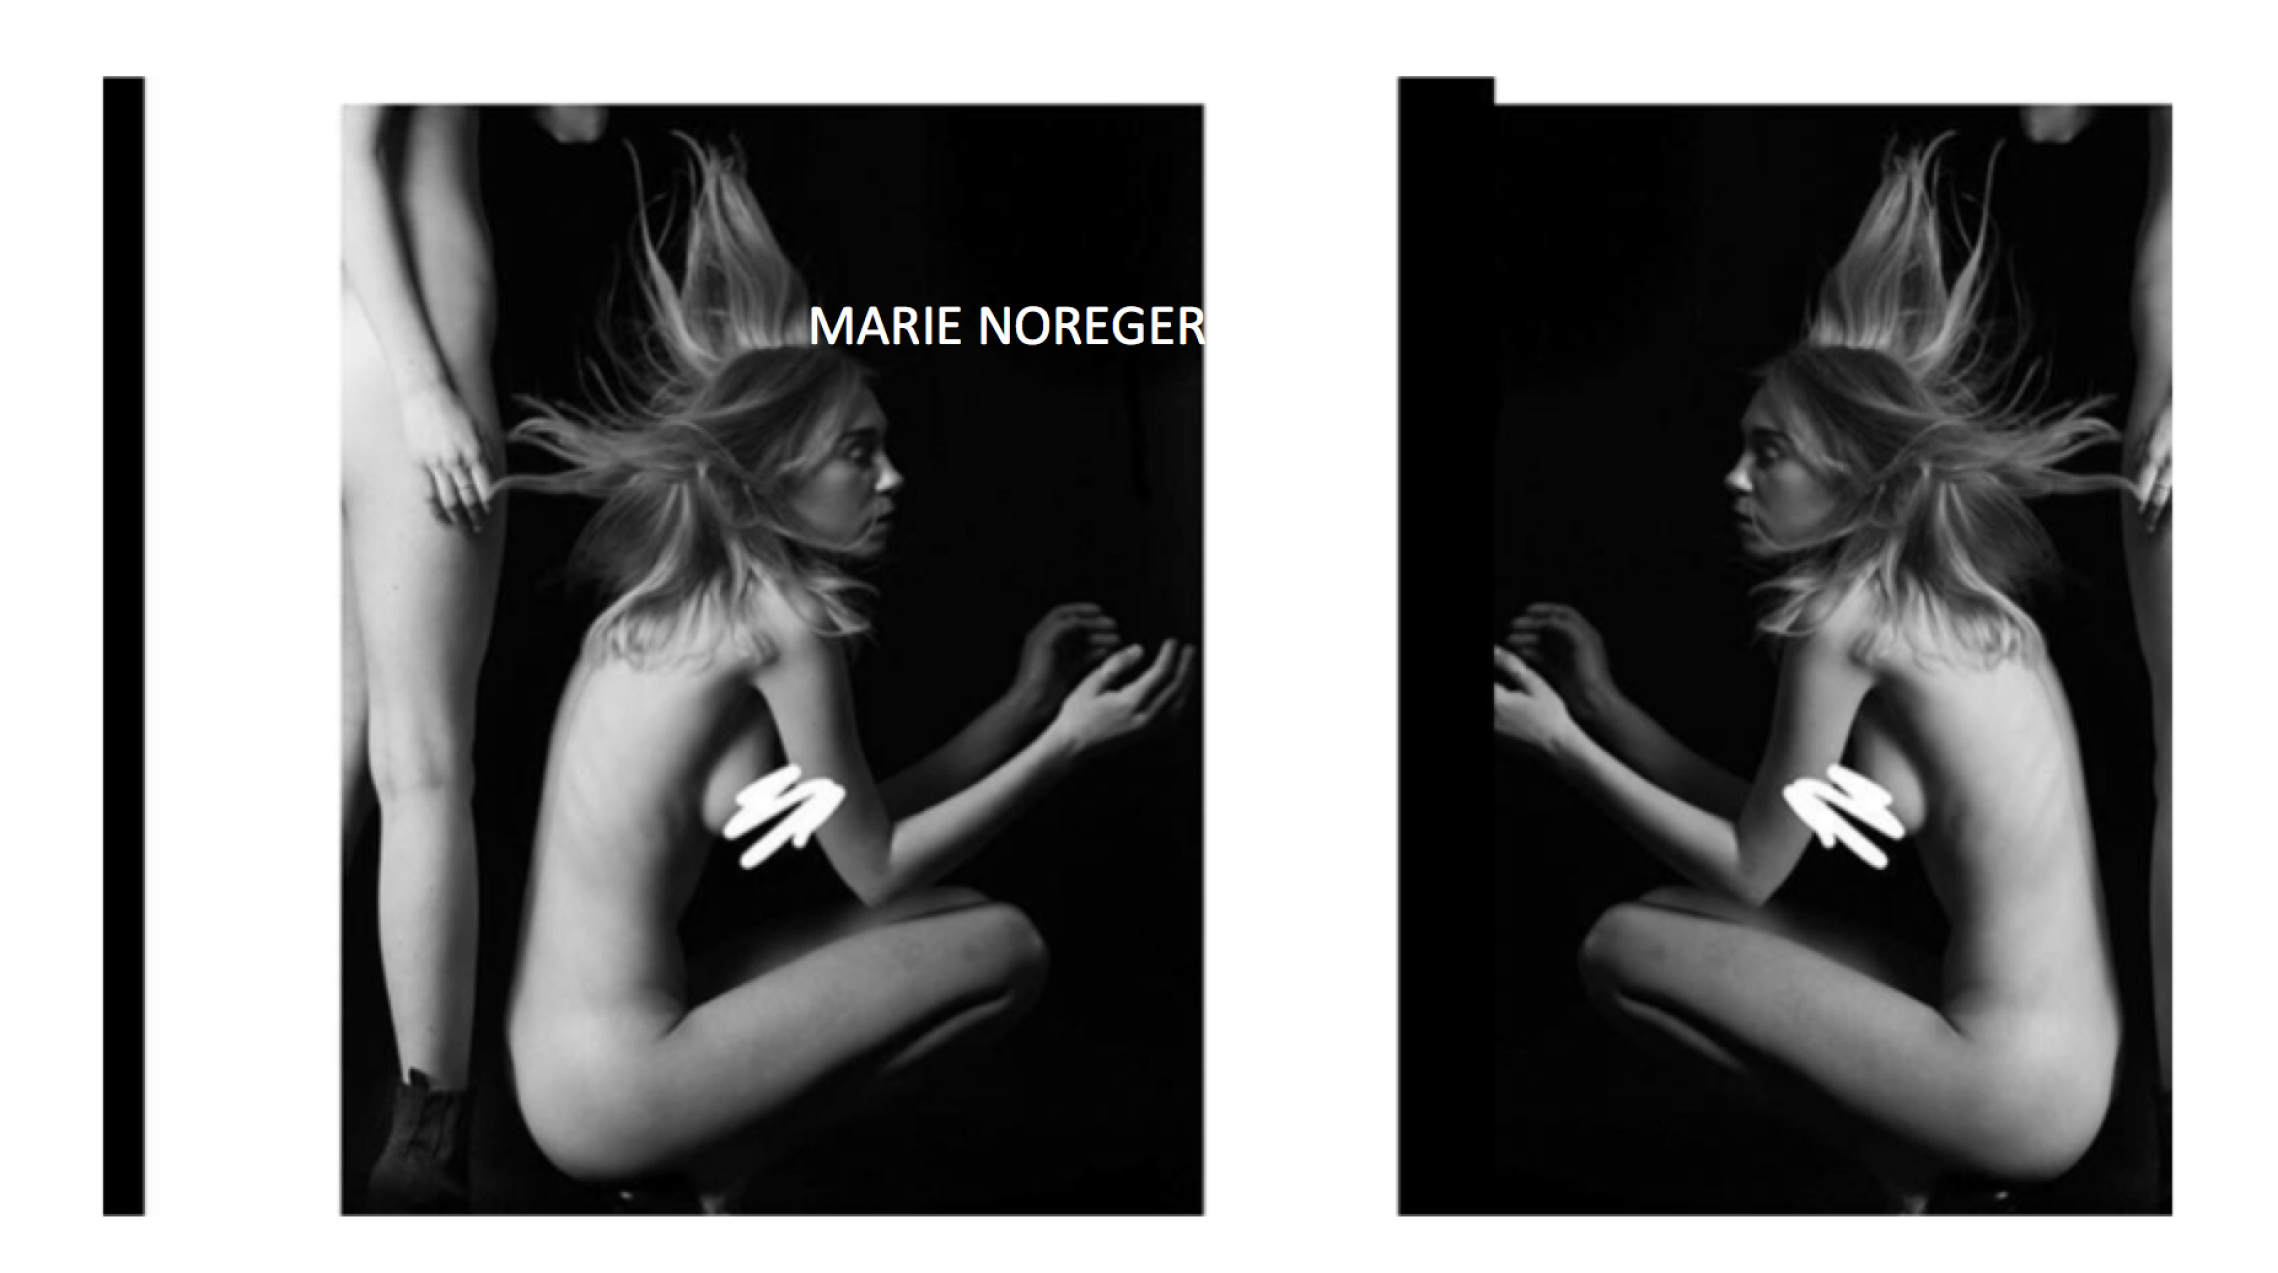 envelope_marie_noreger_interview